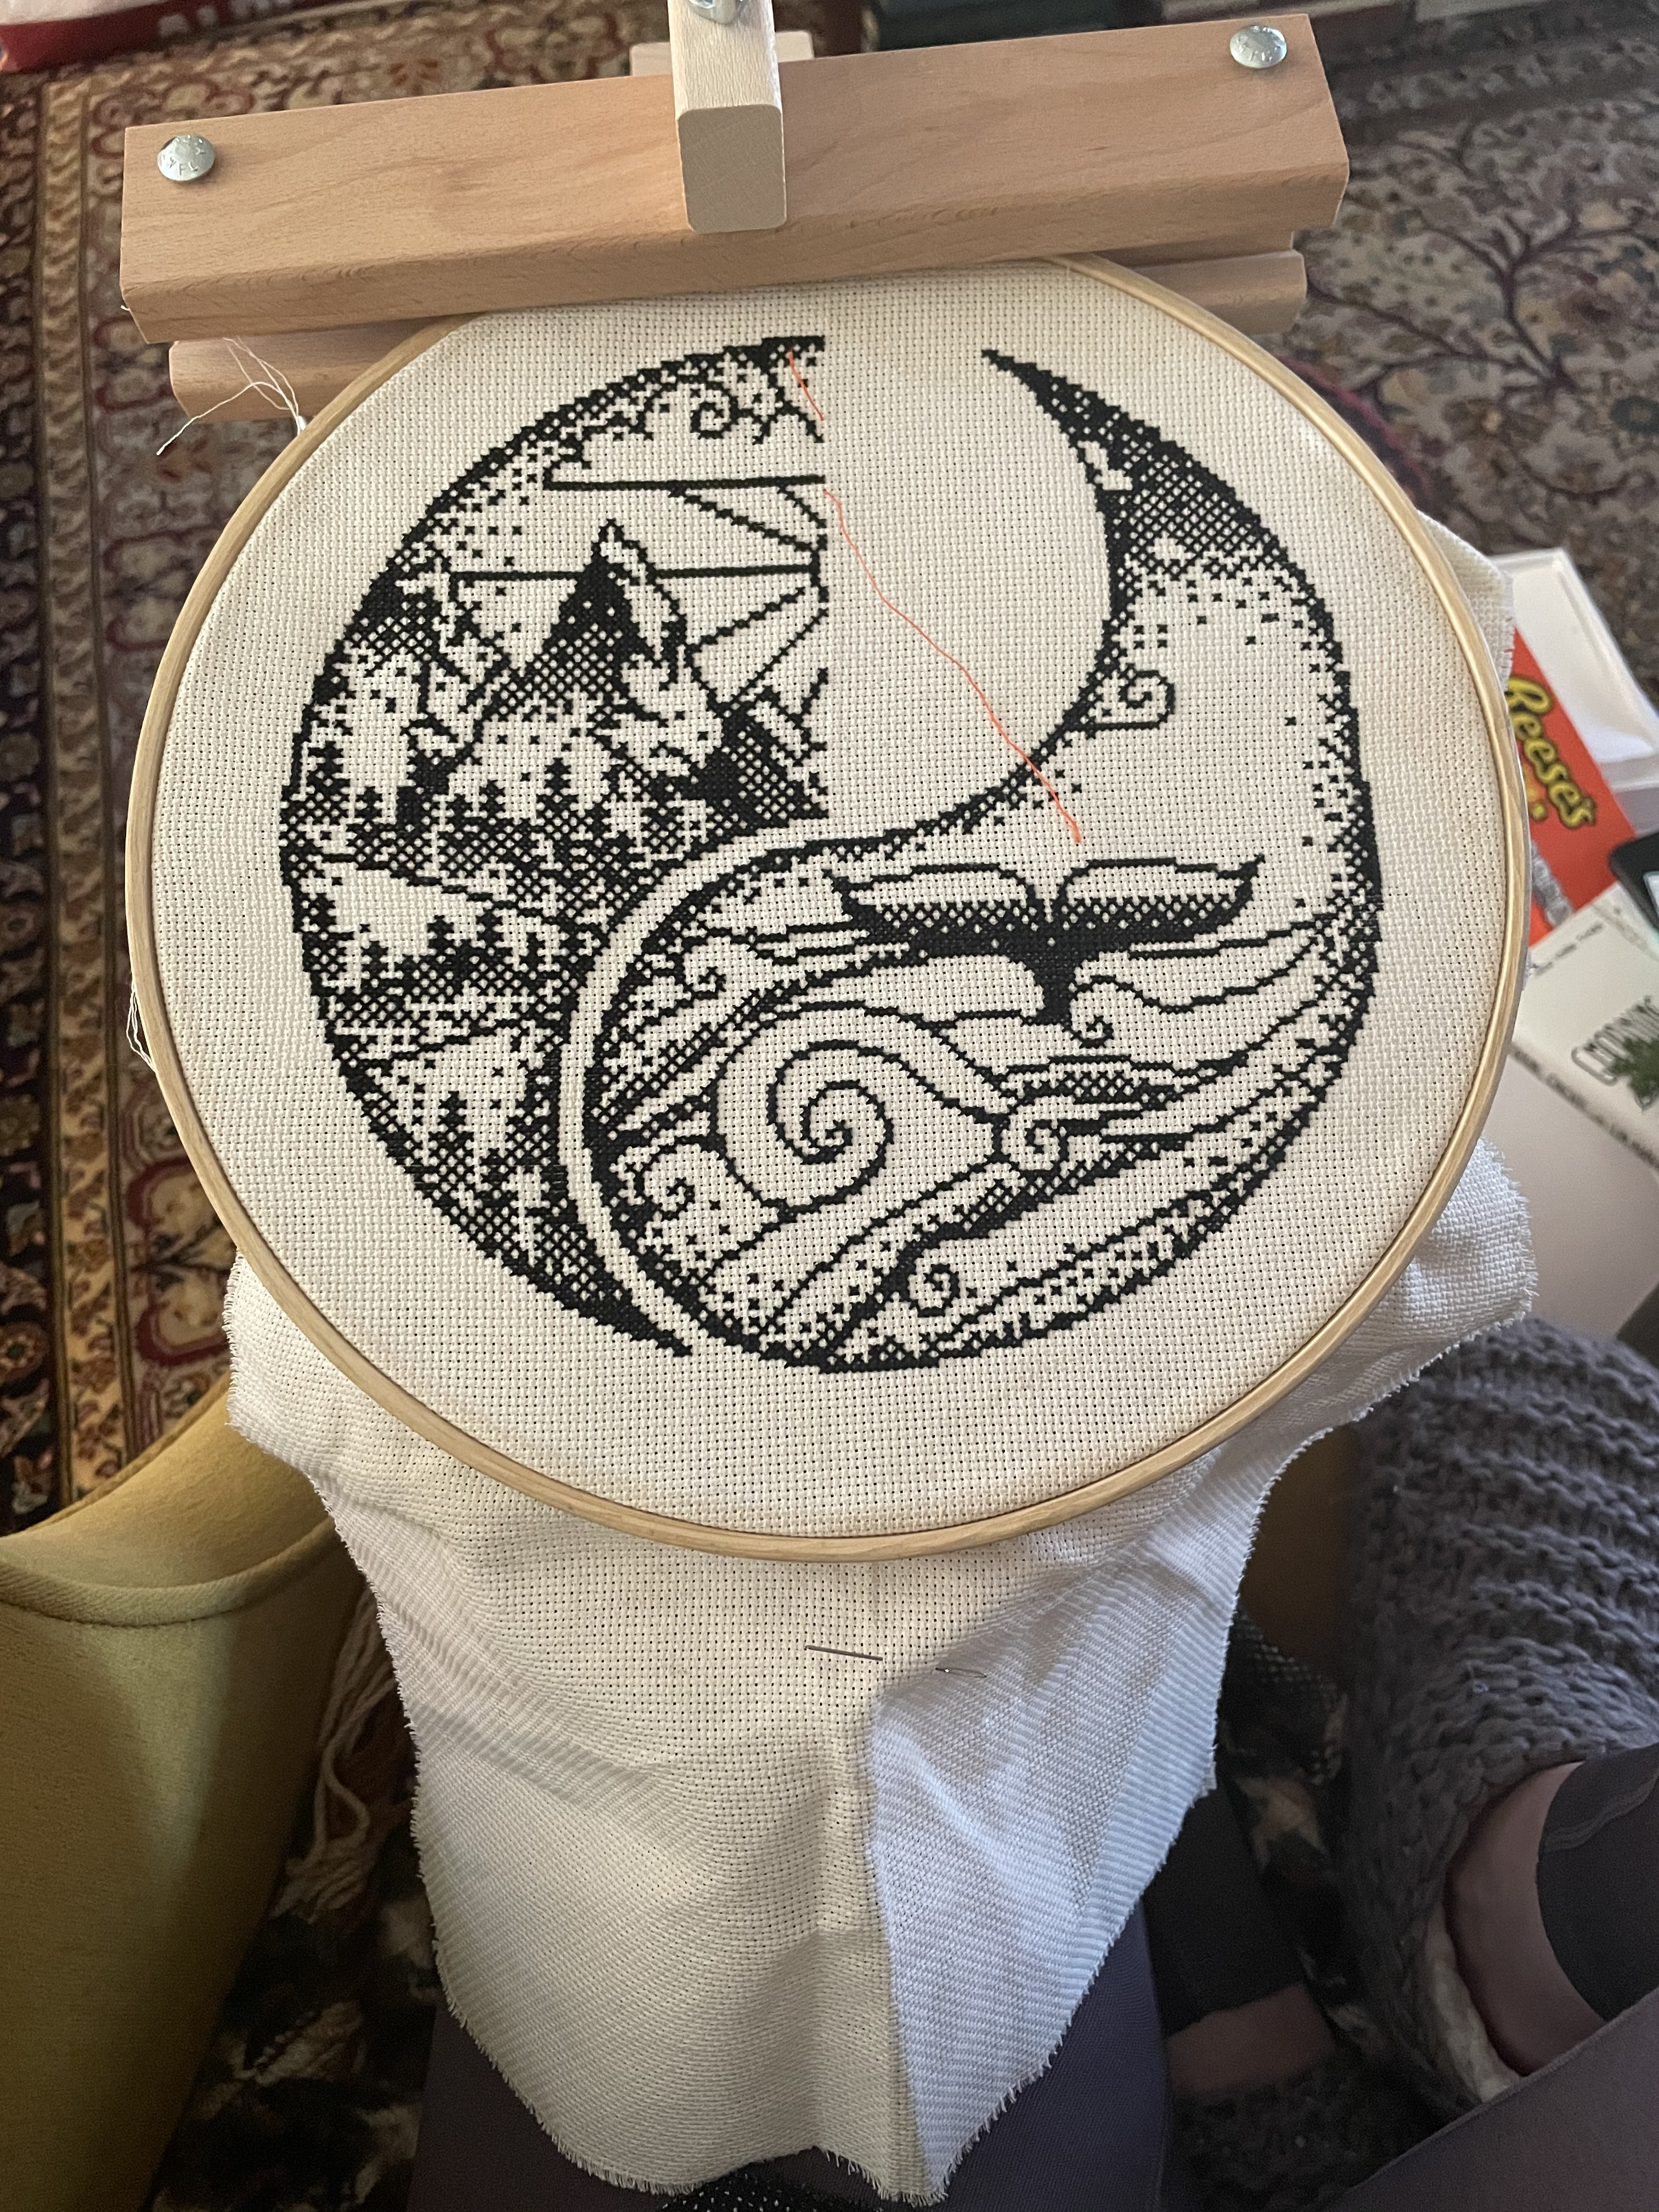 An image of a cross-stitch of the ocean and the mountains